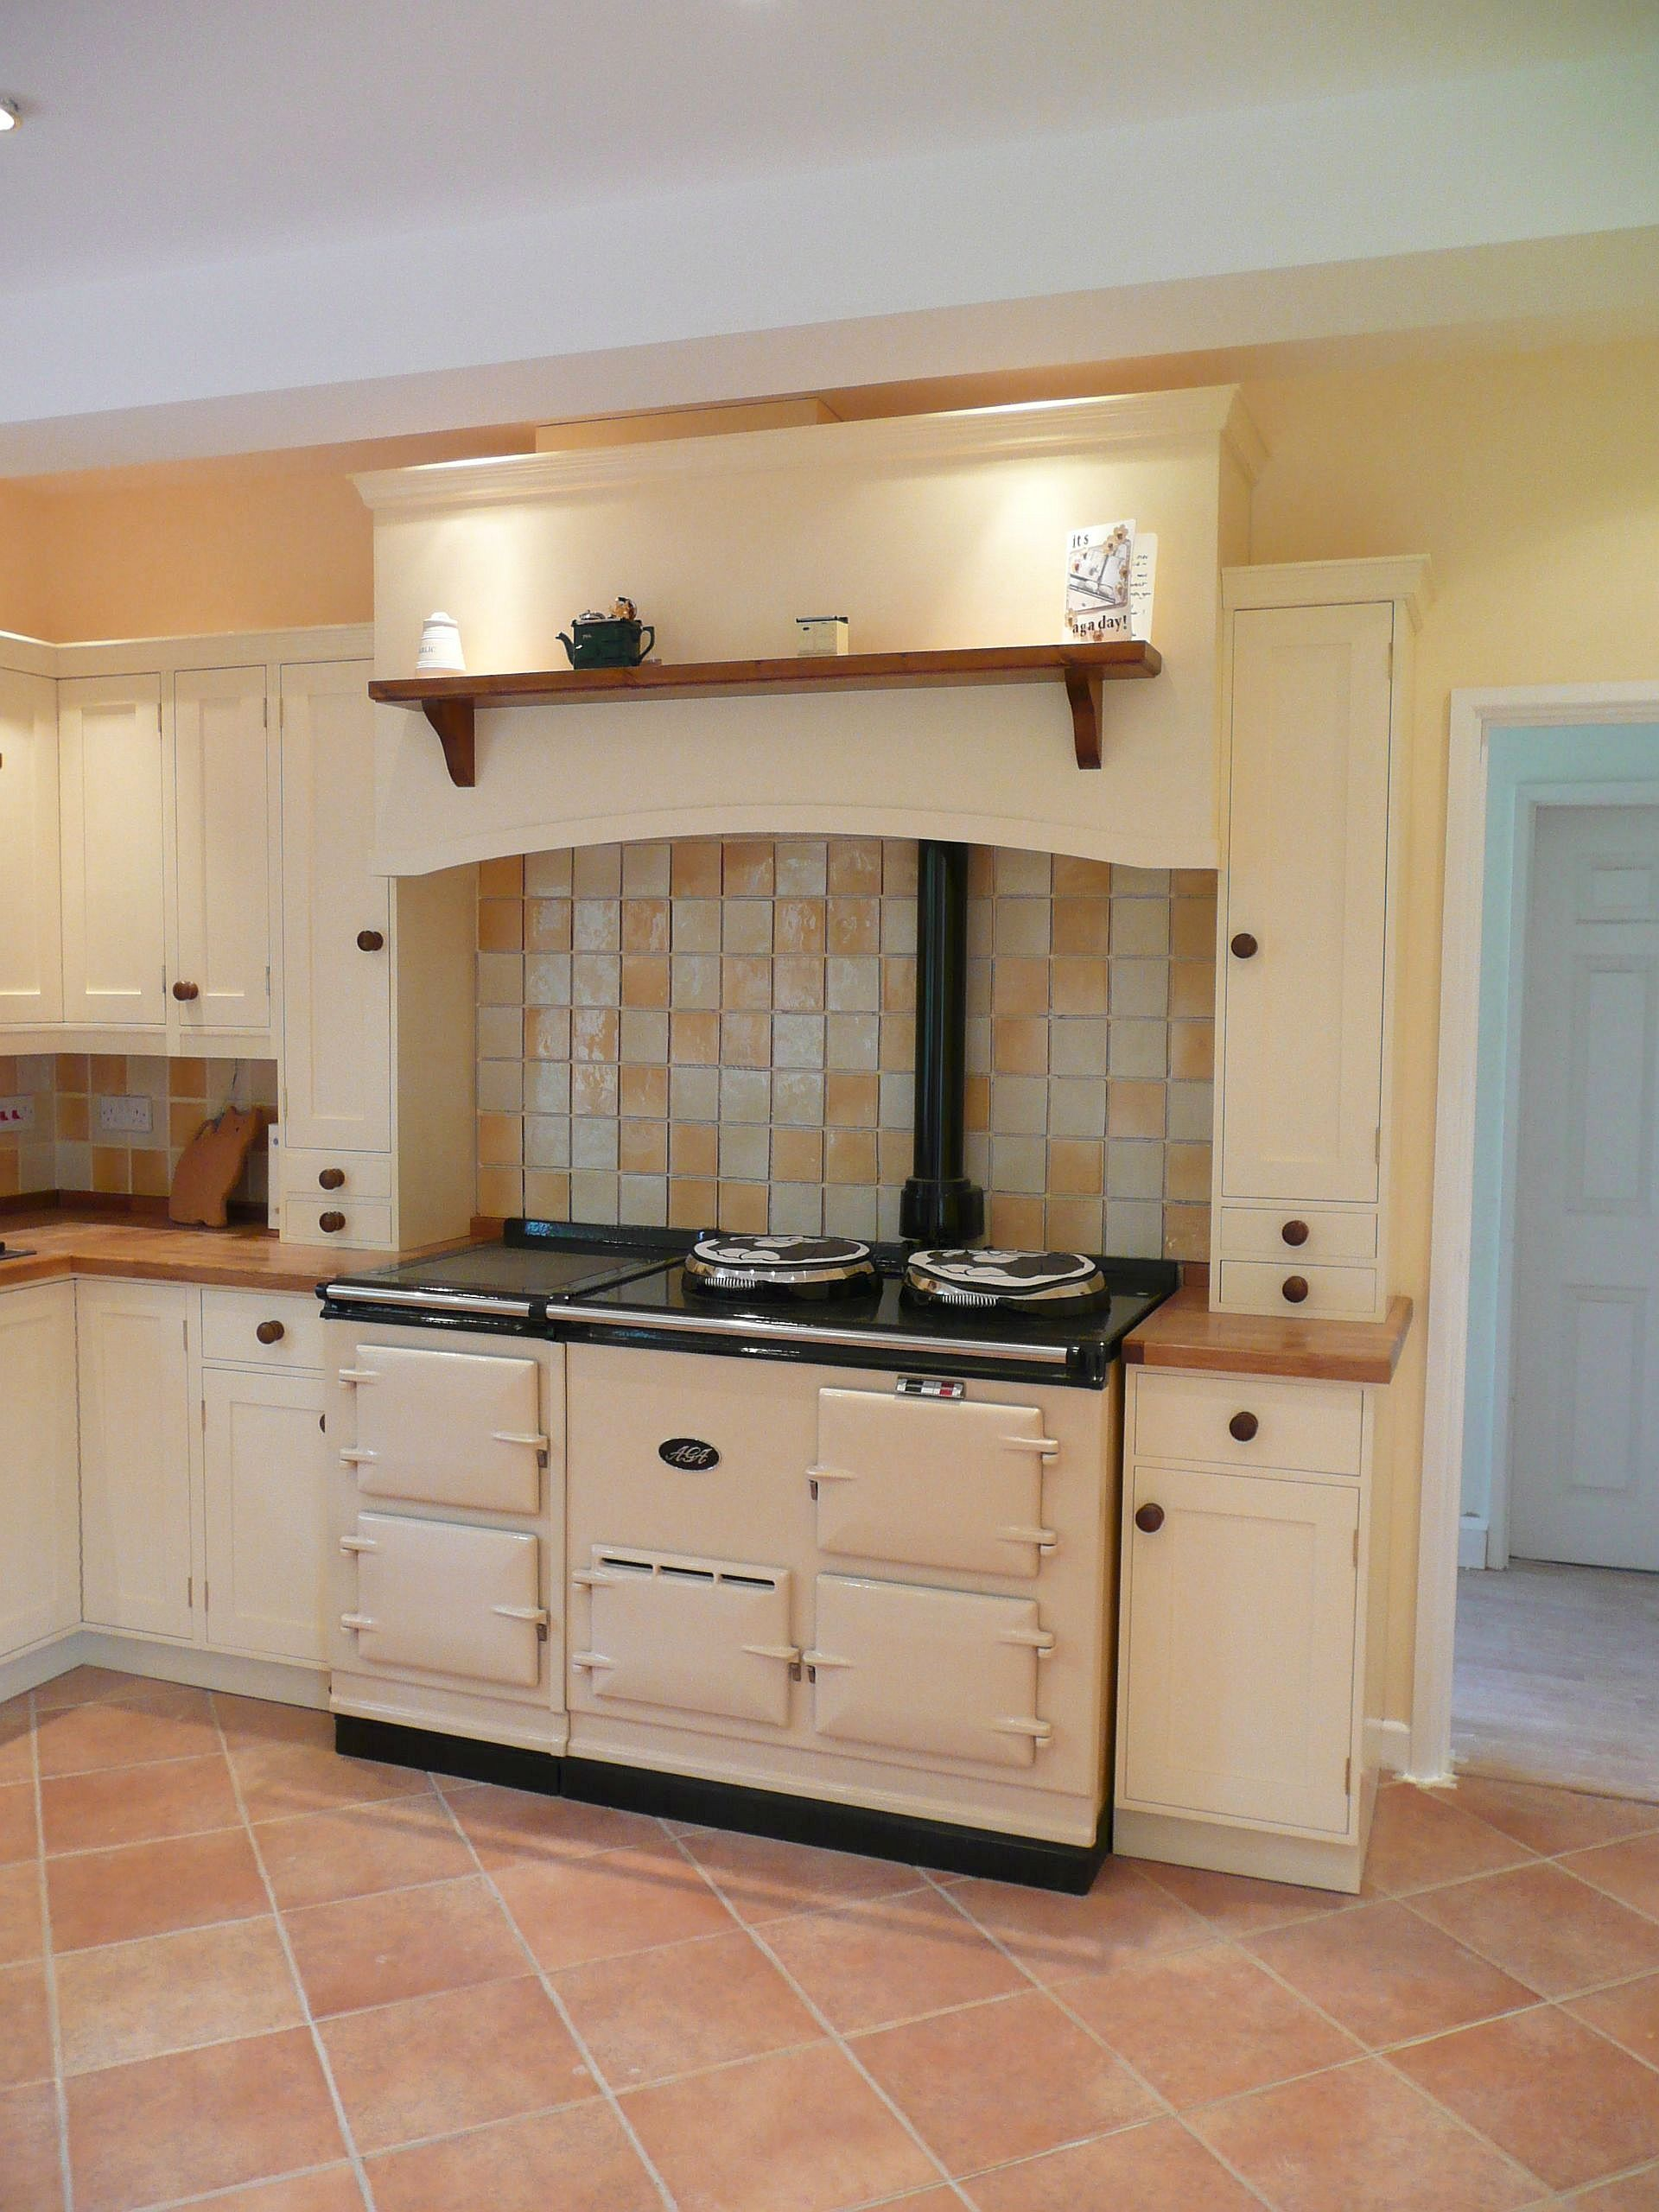 Bespoke kitchen aga kitchen handmade wooden kitchen8 i for Kitchen designs with aga cookers